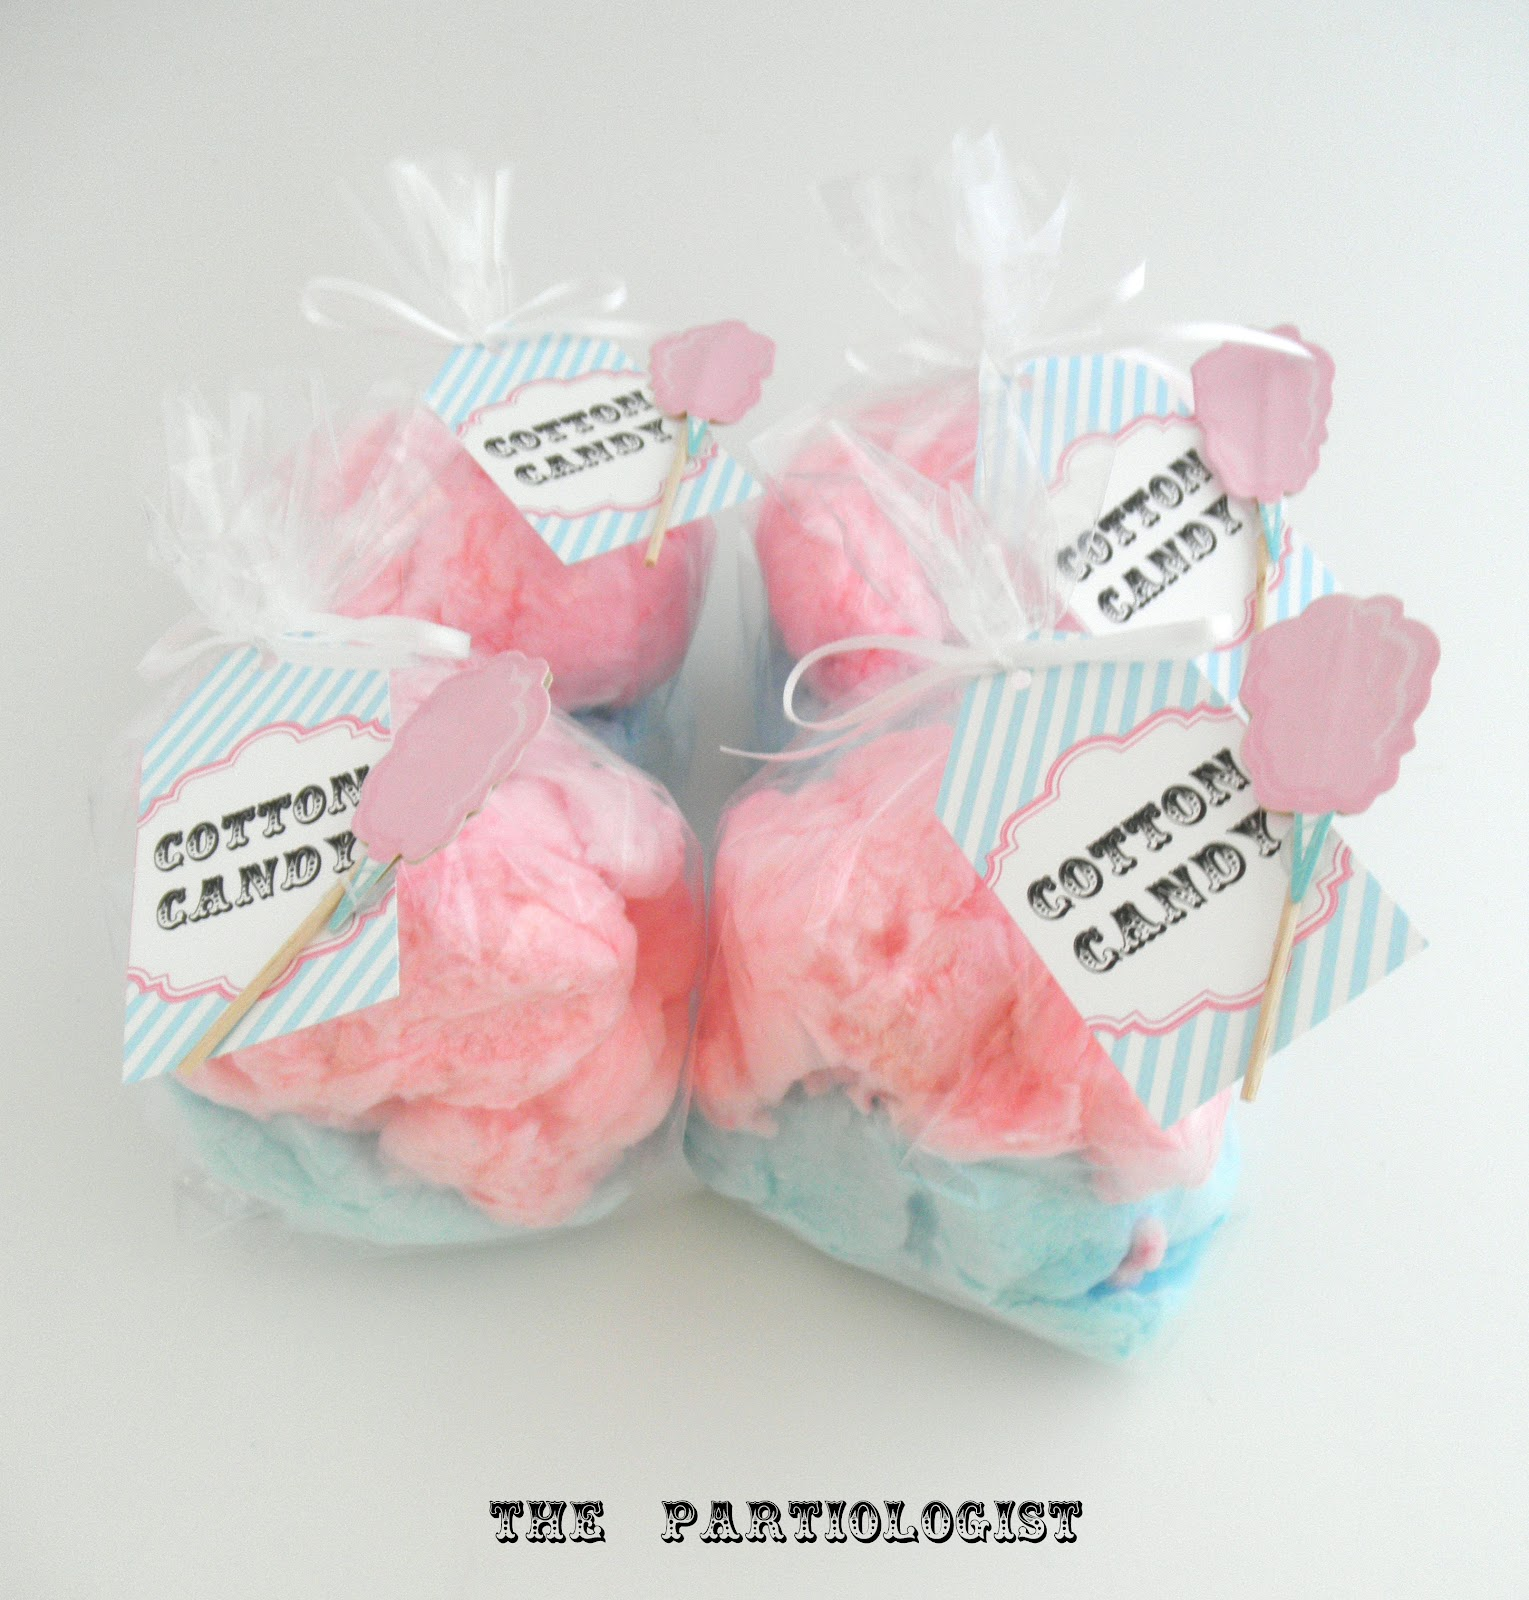 The Partiologist Featuring Cotton Candy